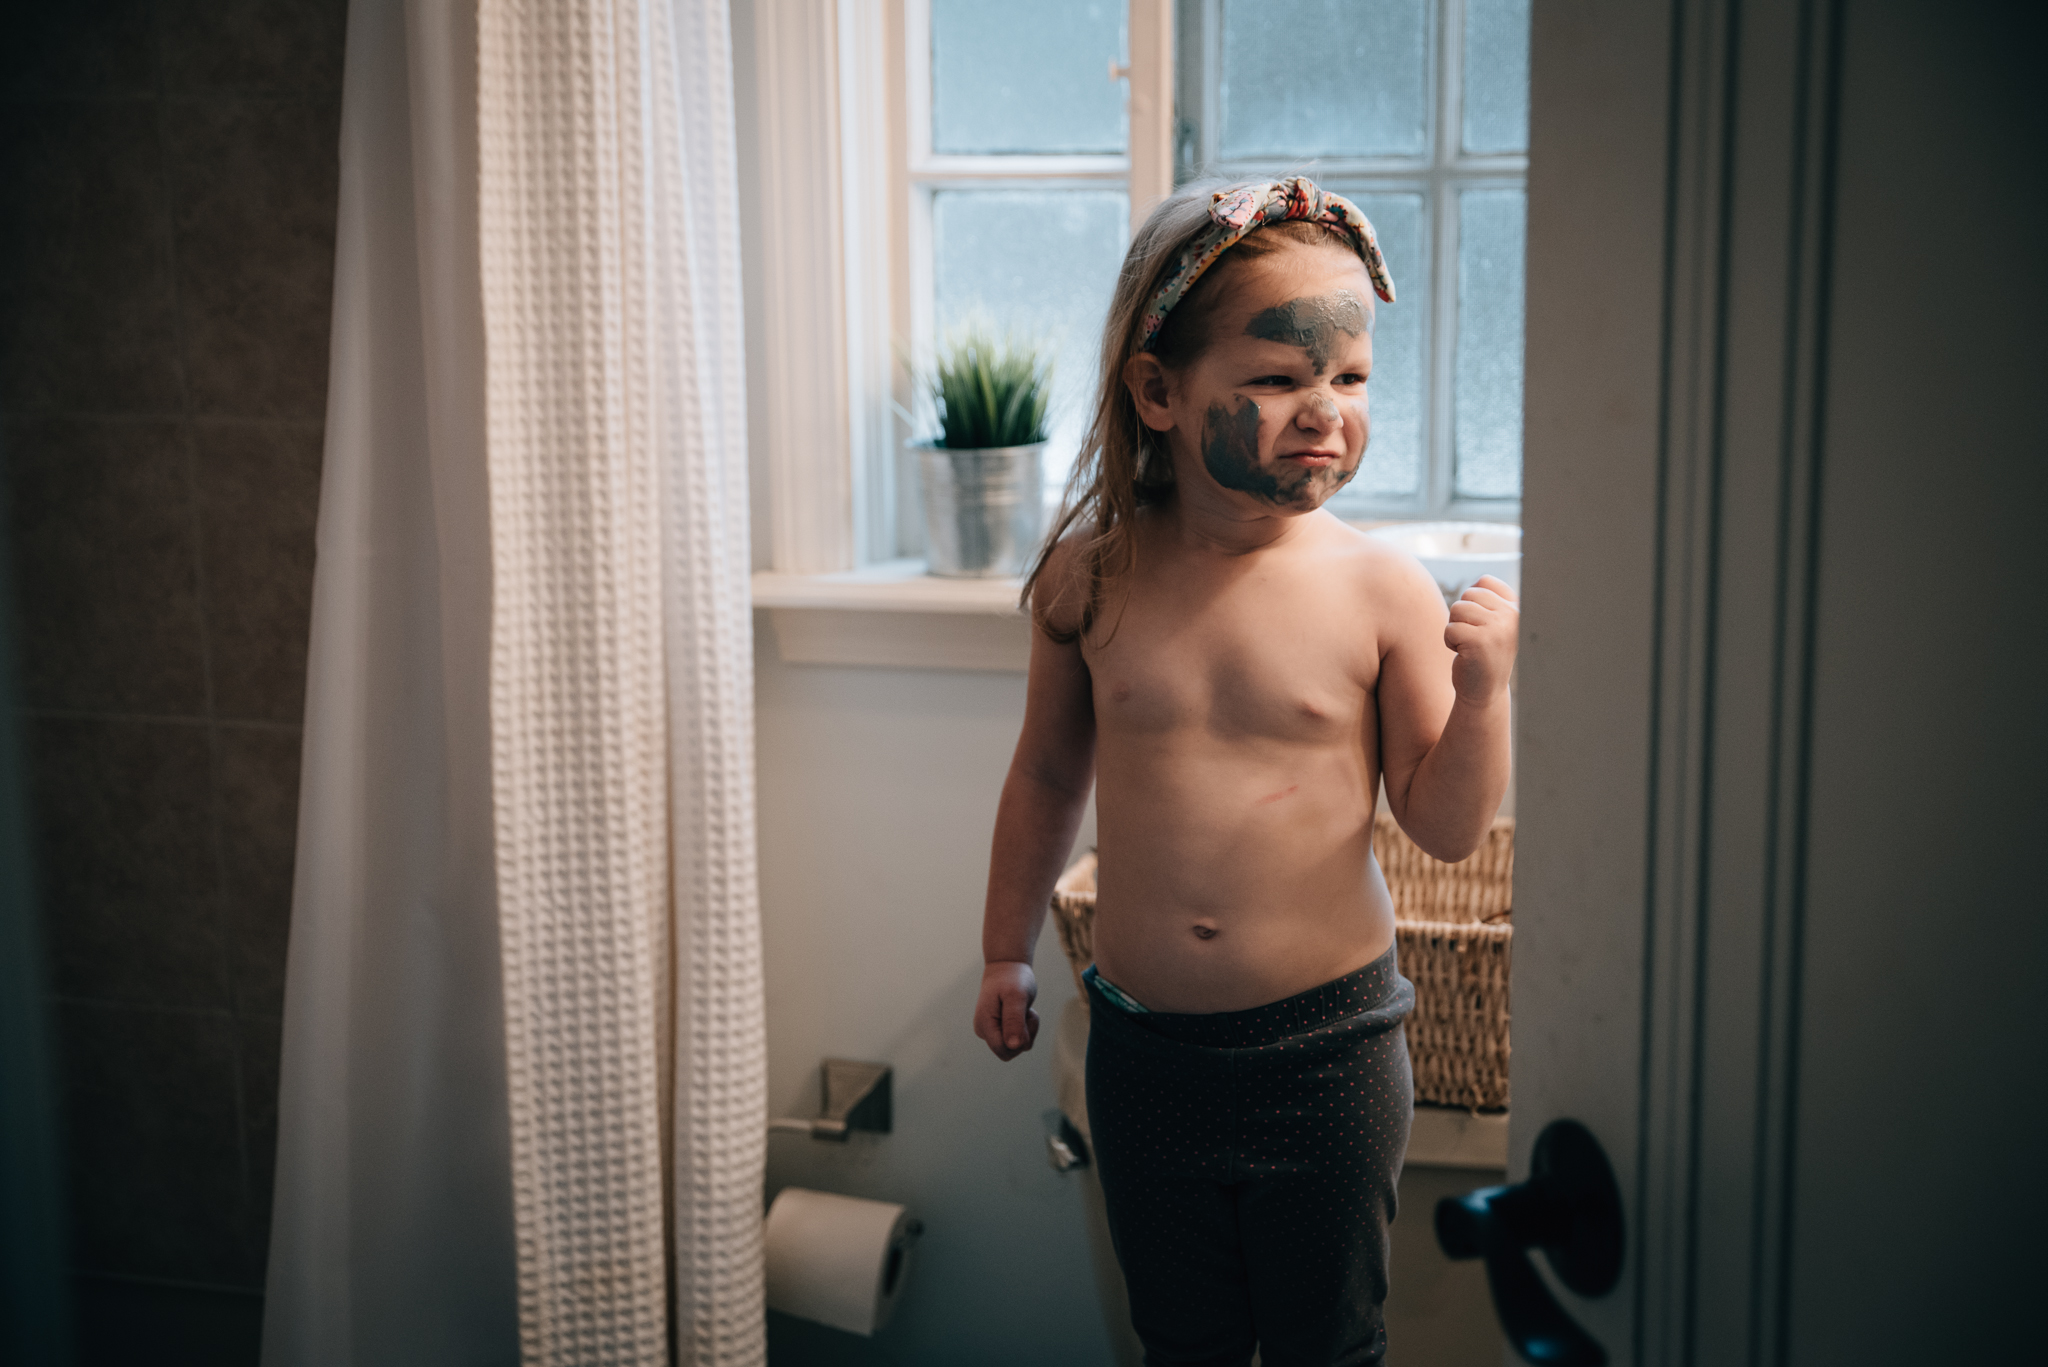 toddler posing in mirror with mud mask